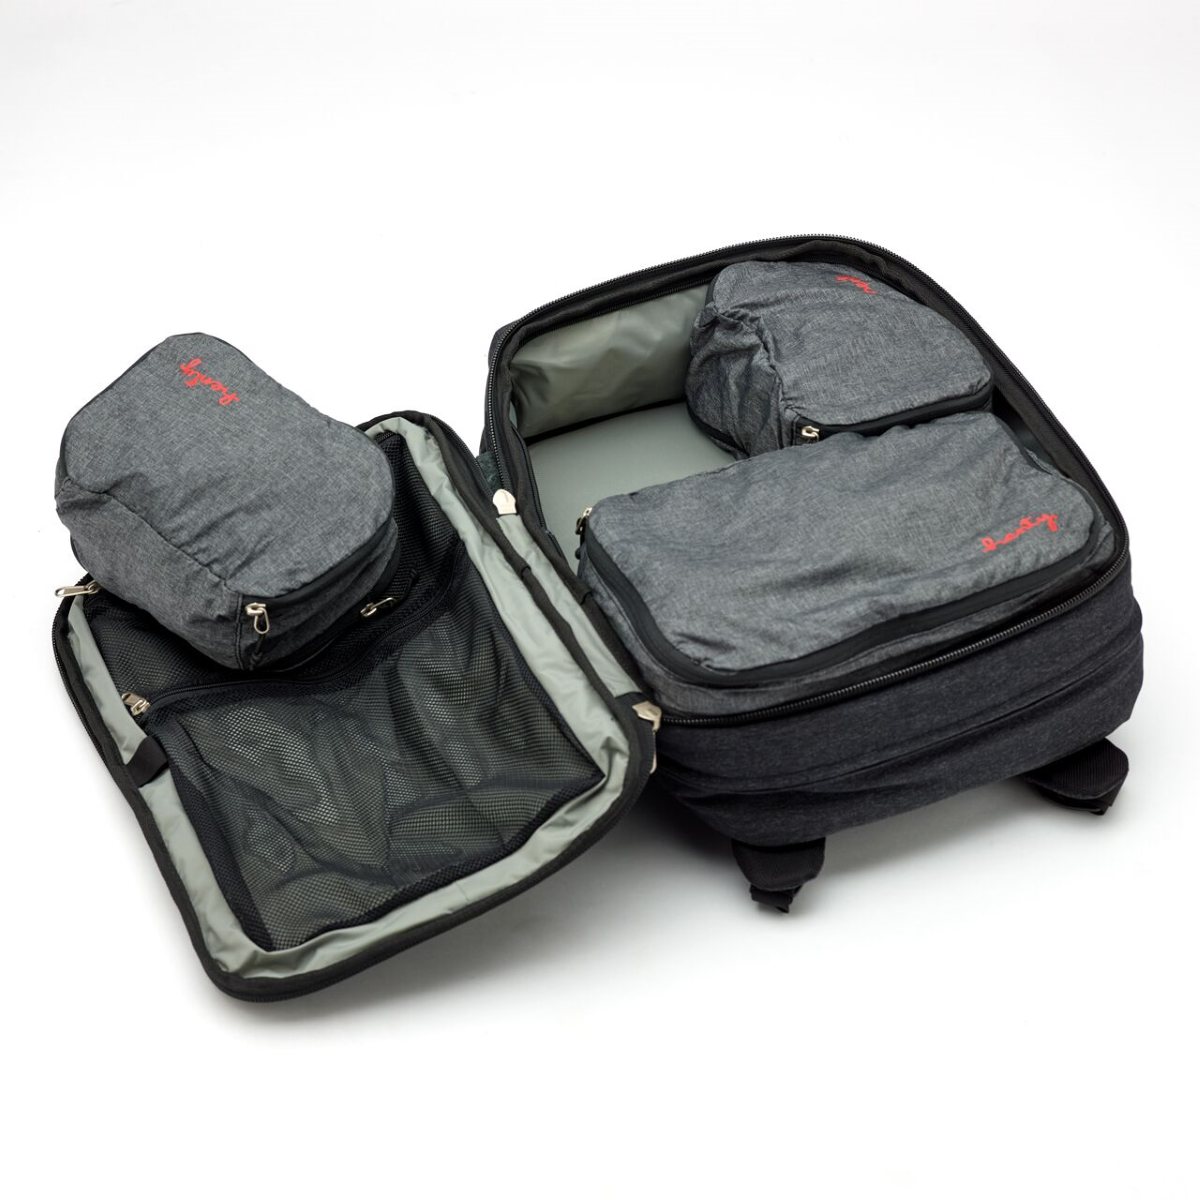 Henty Travel Brief Backpack Three Packing Cubes (1)